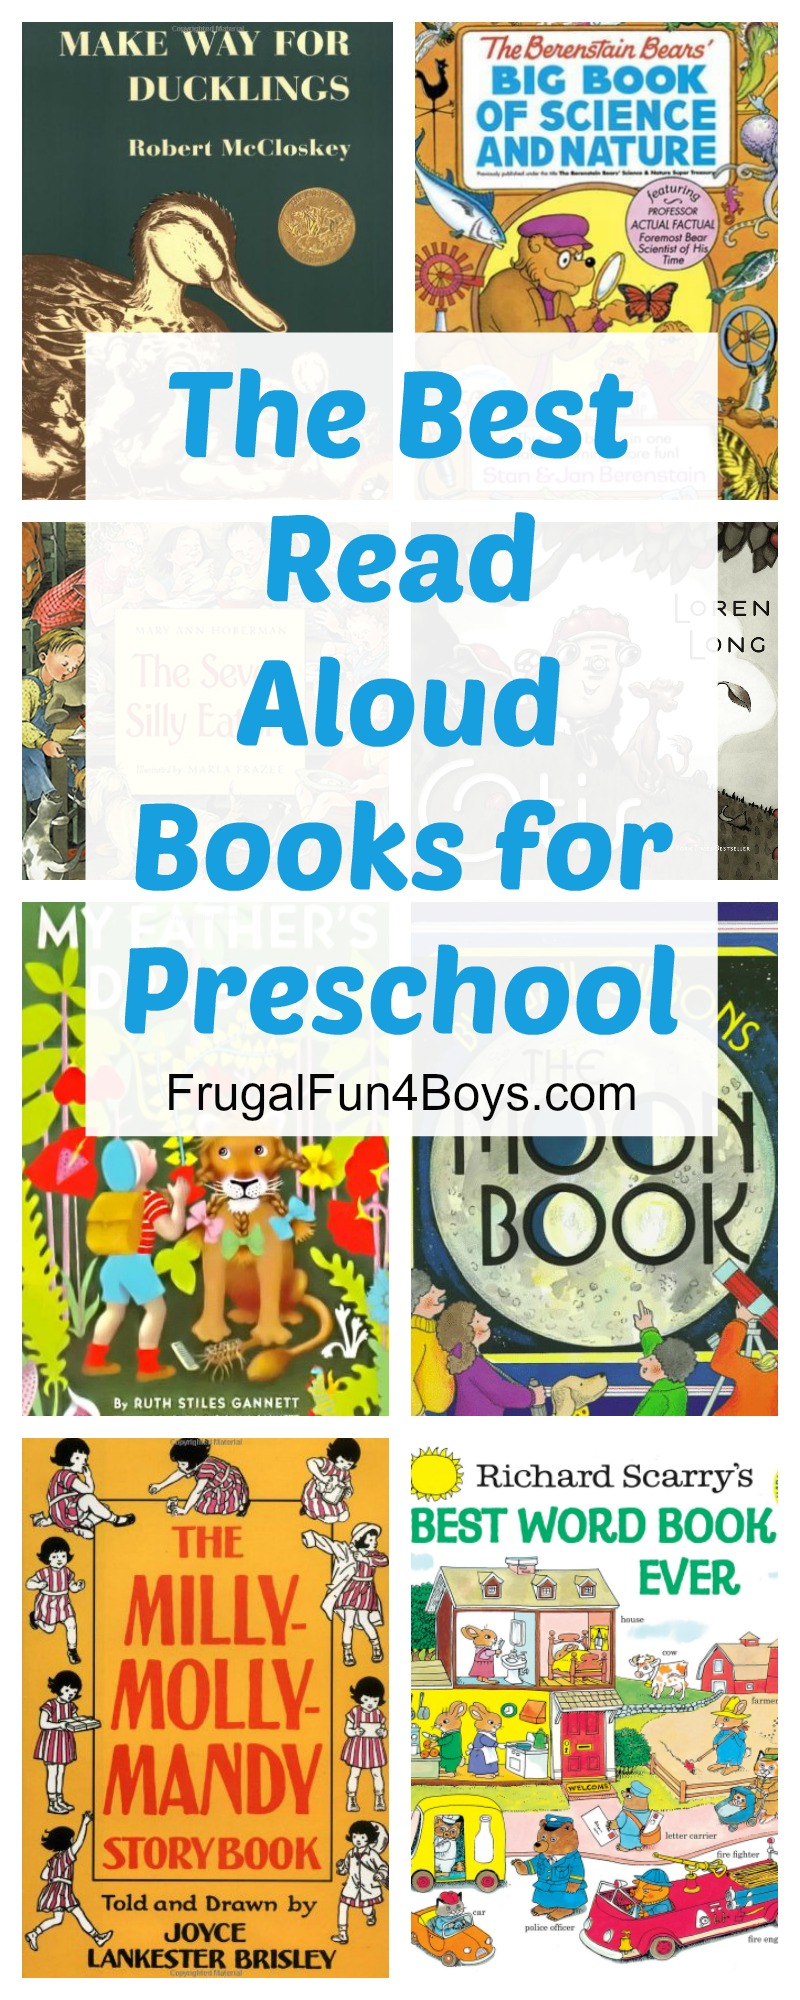 The Best Read-Aloud Books for Preschool